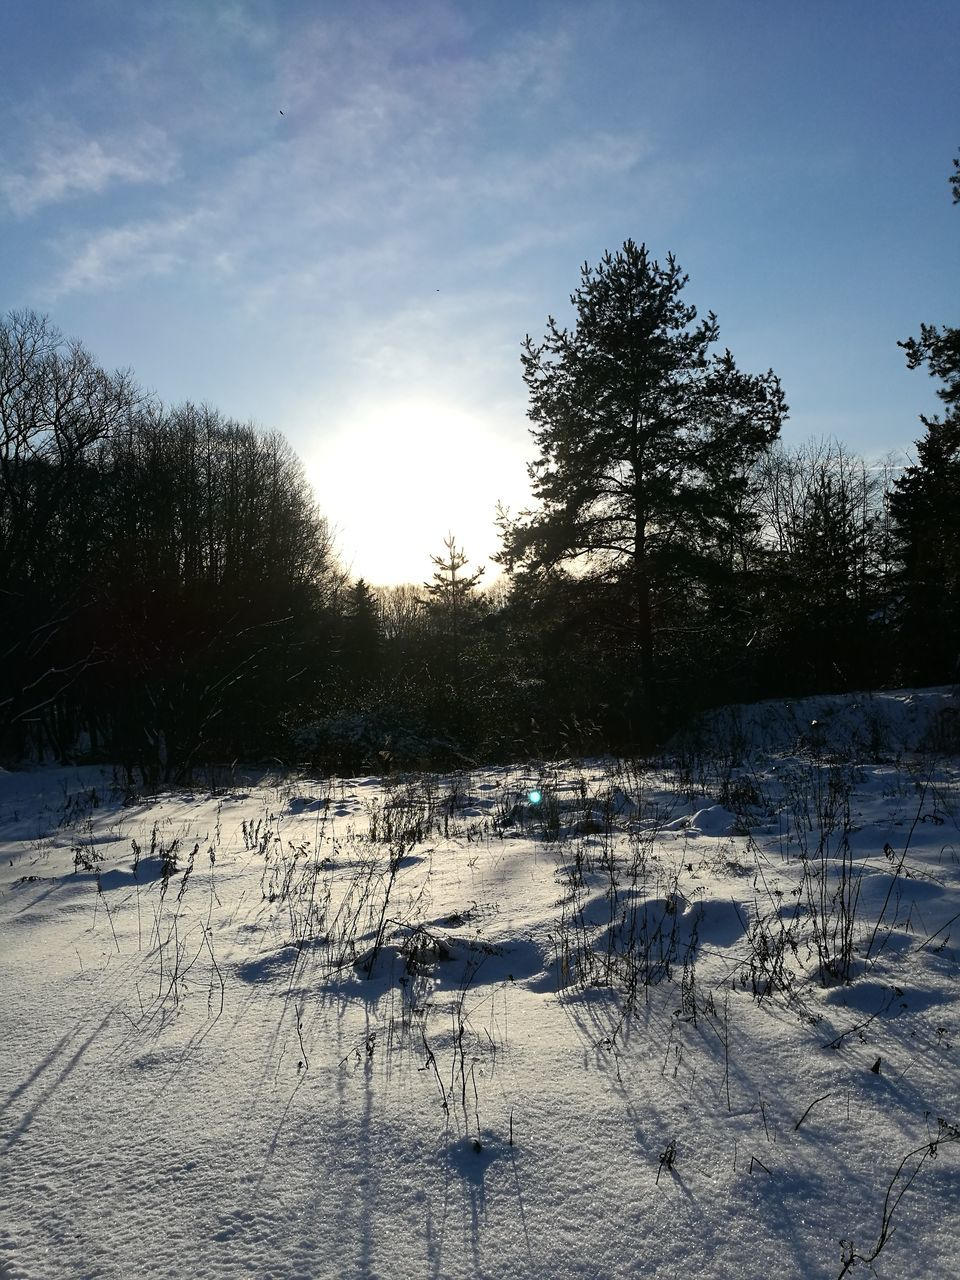 winter, snow, cold temperature, tree, nature, weather, sunlight, tranquility, scenics, no people, outdoors, tranquil scene, landscape, field, beauty in nature, sun, day, frozen, sky